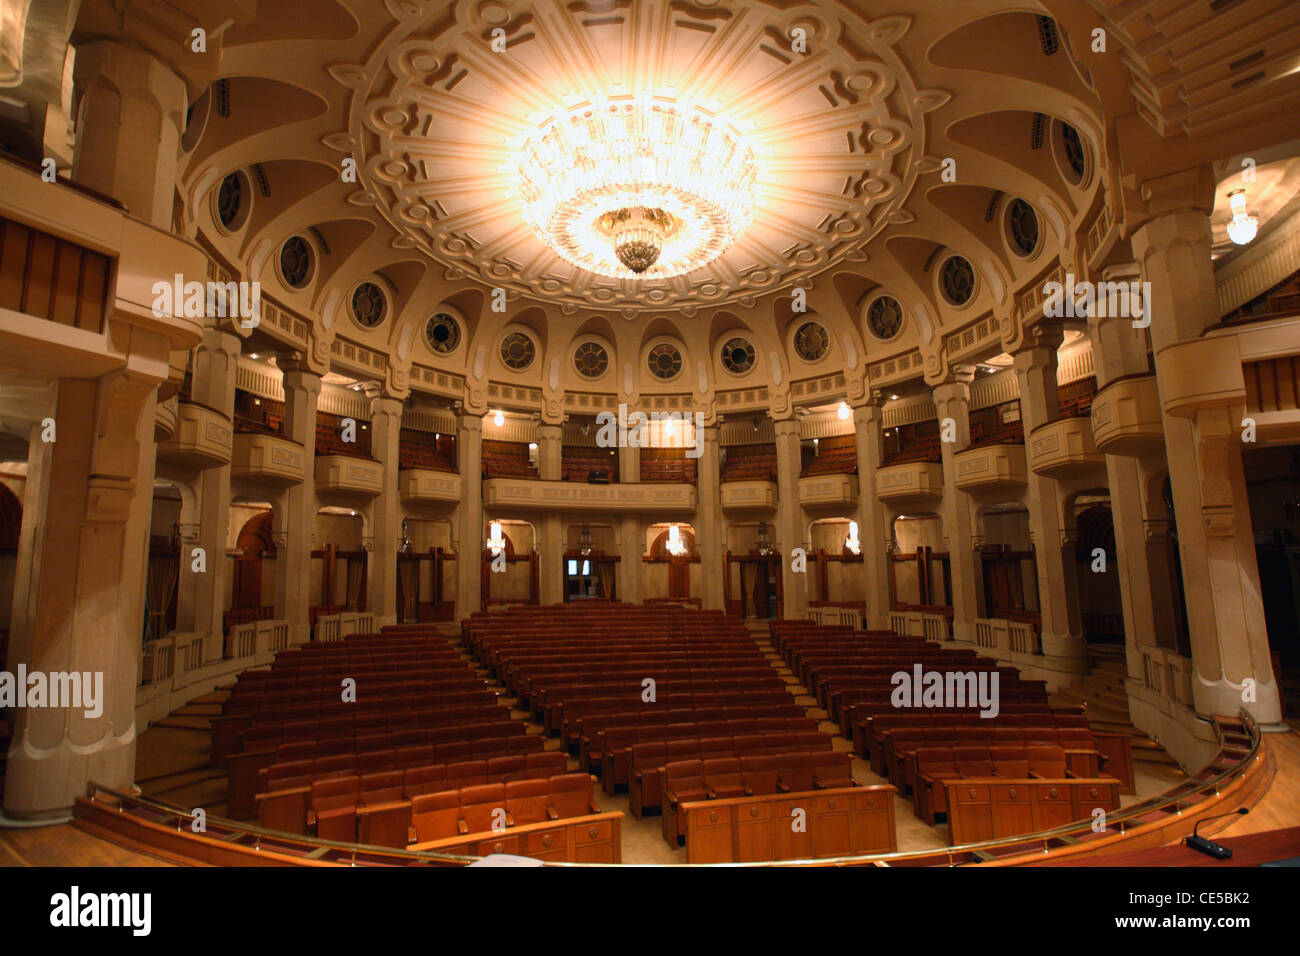 Europe, Romania, Bucharest, The theatre of Palace of Parliament aka House of the people Stock Photo